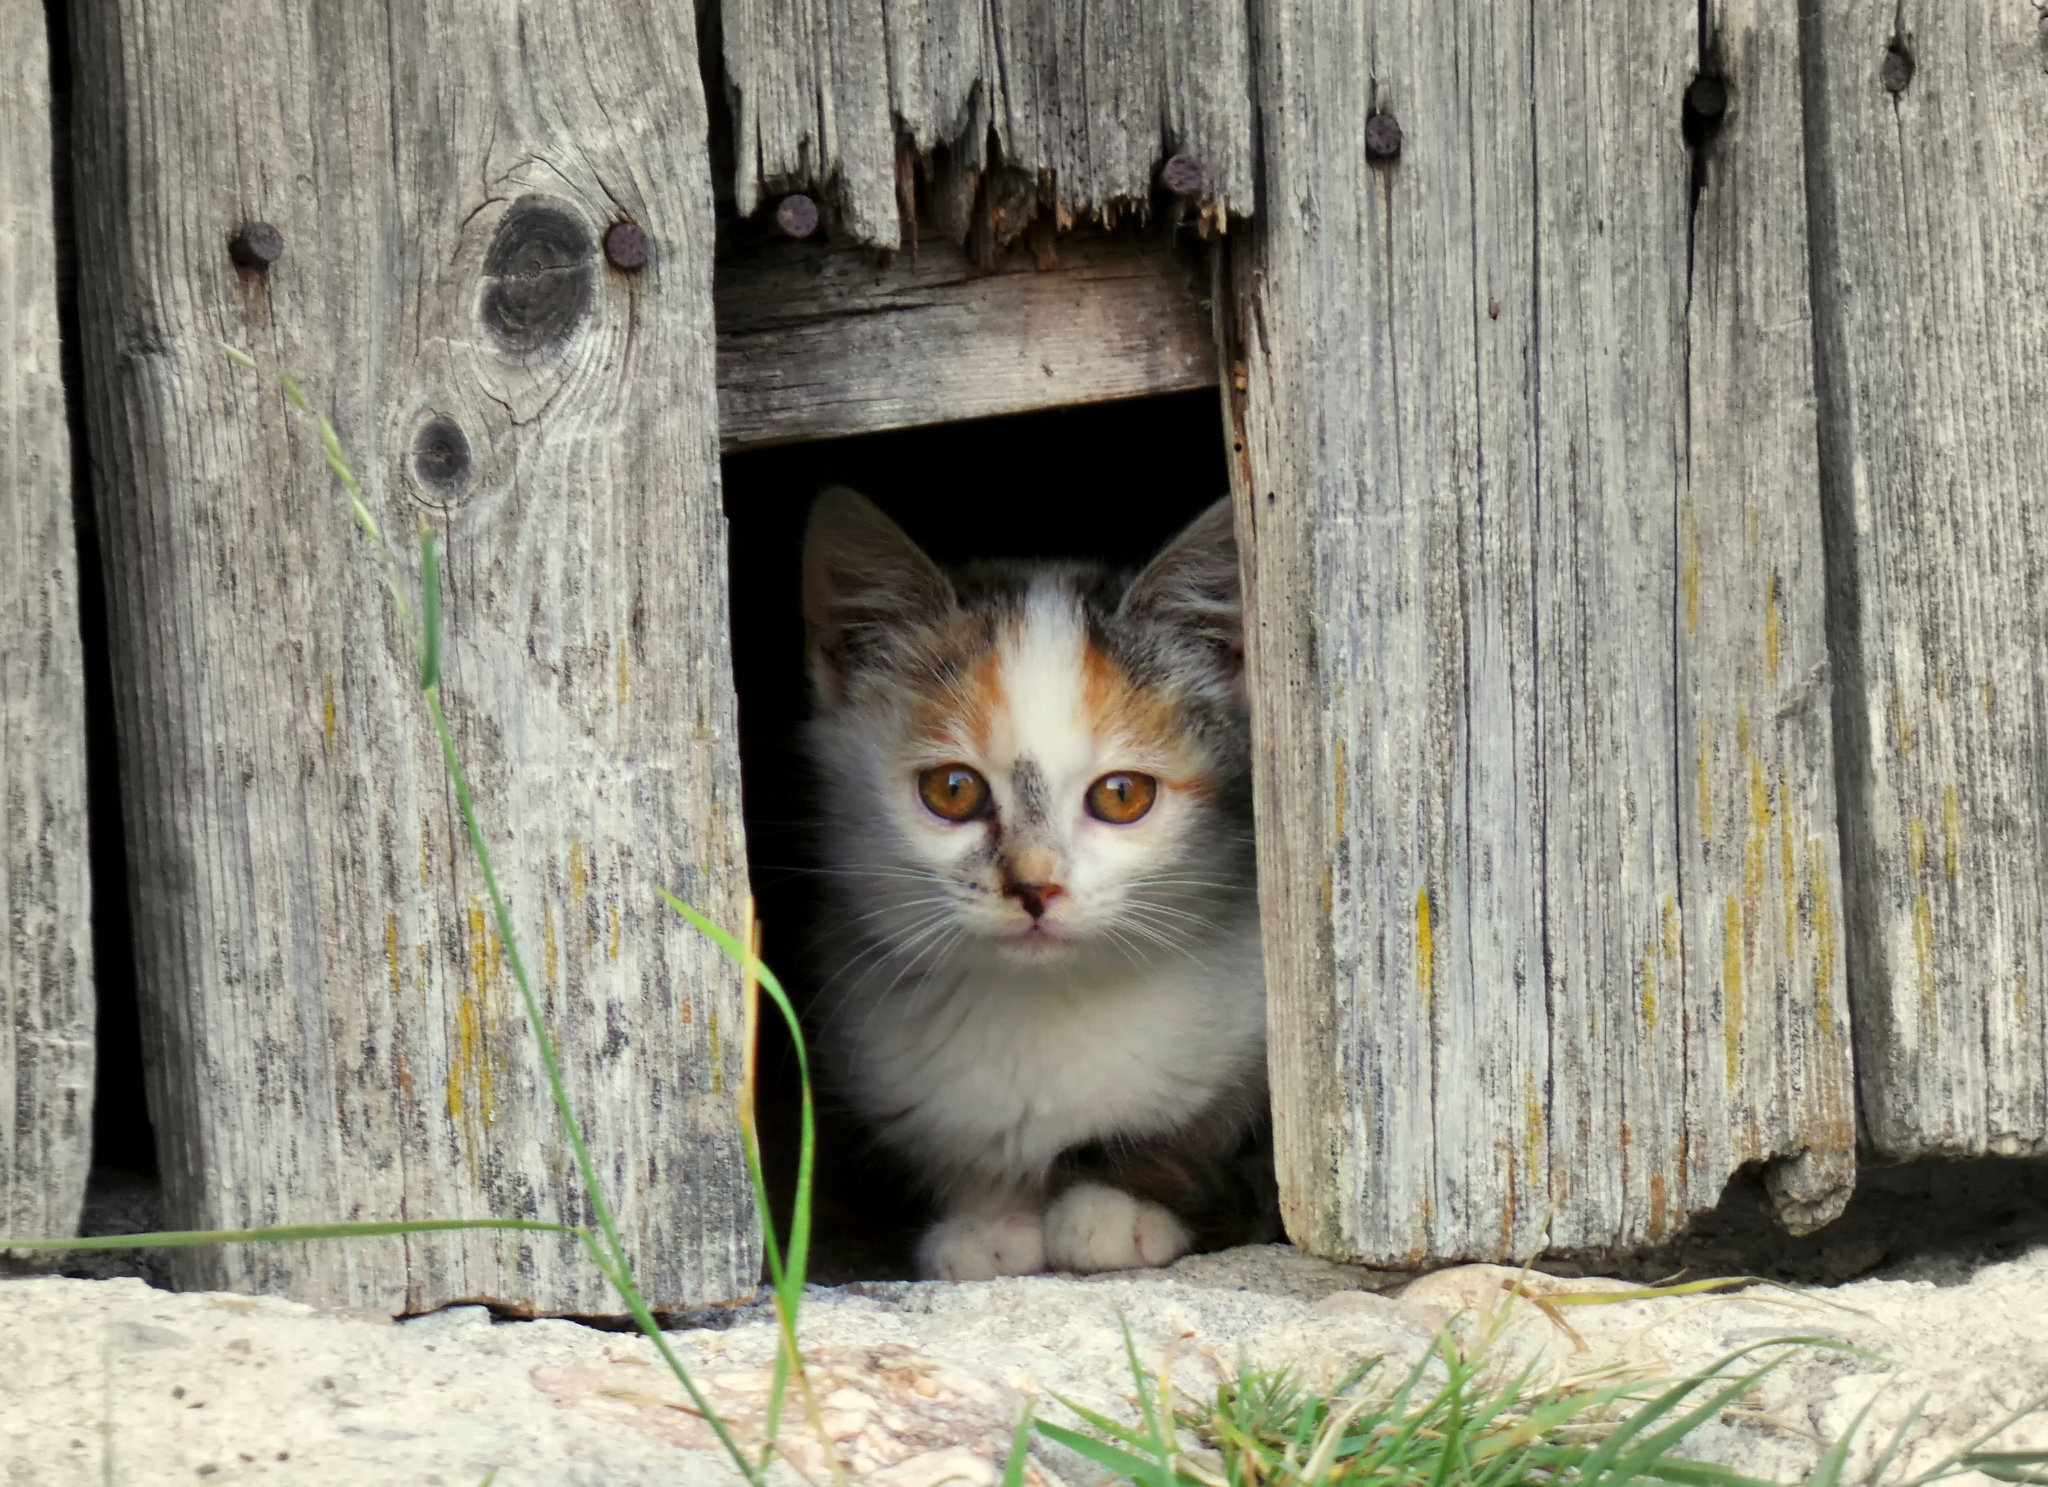 Download mobile wallpaper Animals, Kitty, Kitten, Muzzle, Spotted, Spotty, Fence for free.